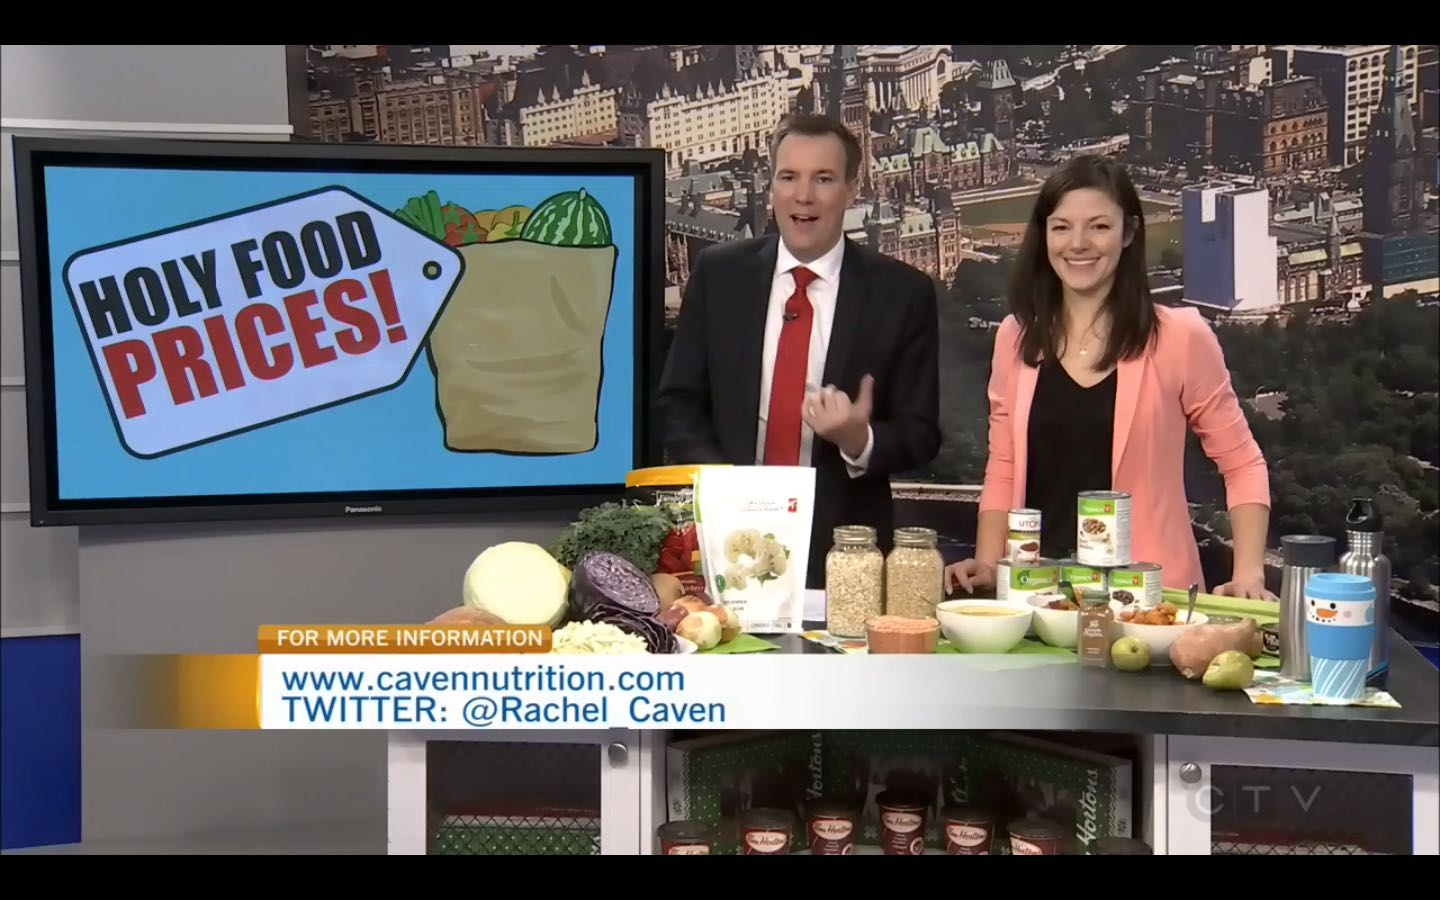 rach food prices